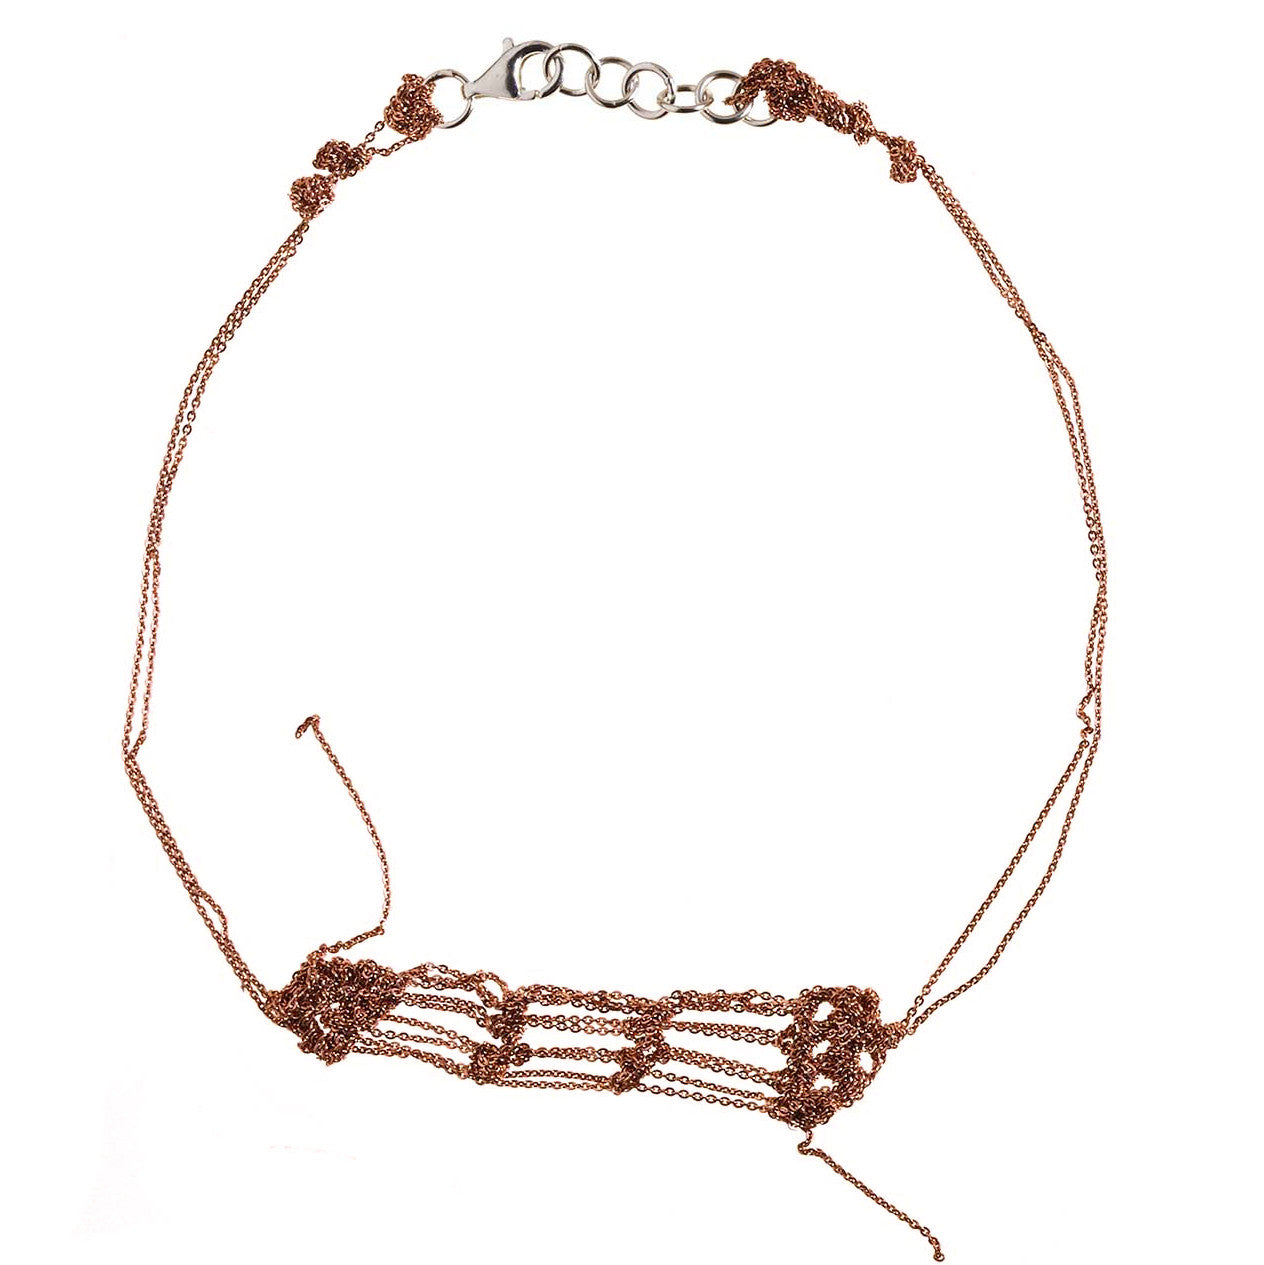 Clasped Bare Frame Necklace in Rose gold